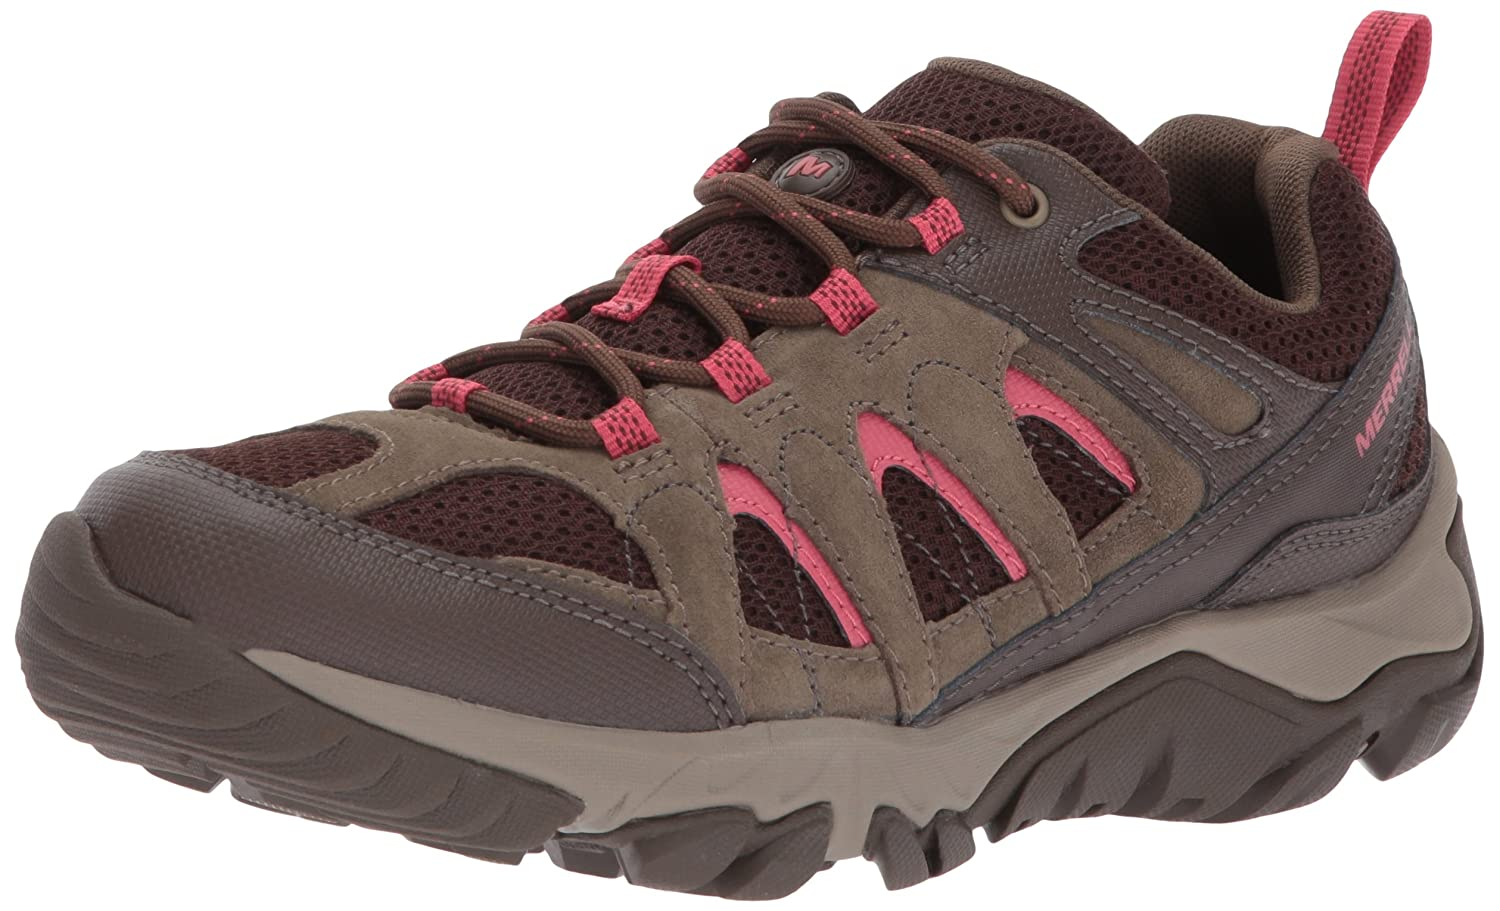 Merrell Women's Outmost Vent Hiking Boot B01N7IC1YJ 10 D(M) US|Canteen